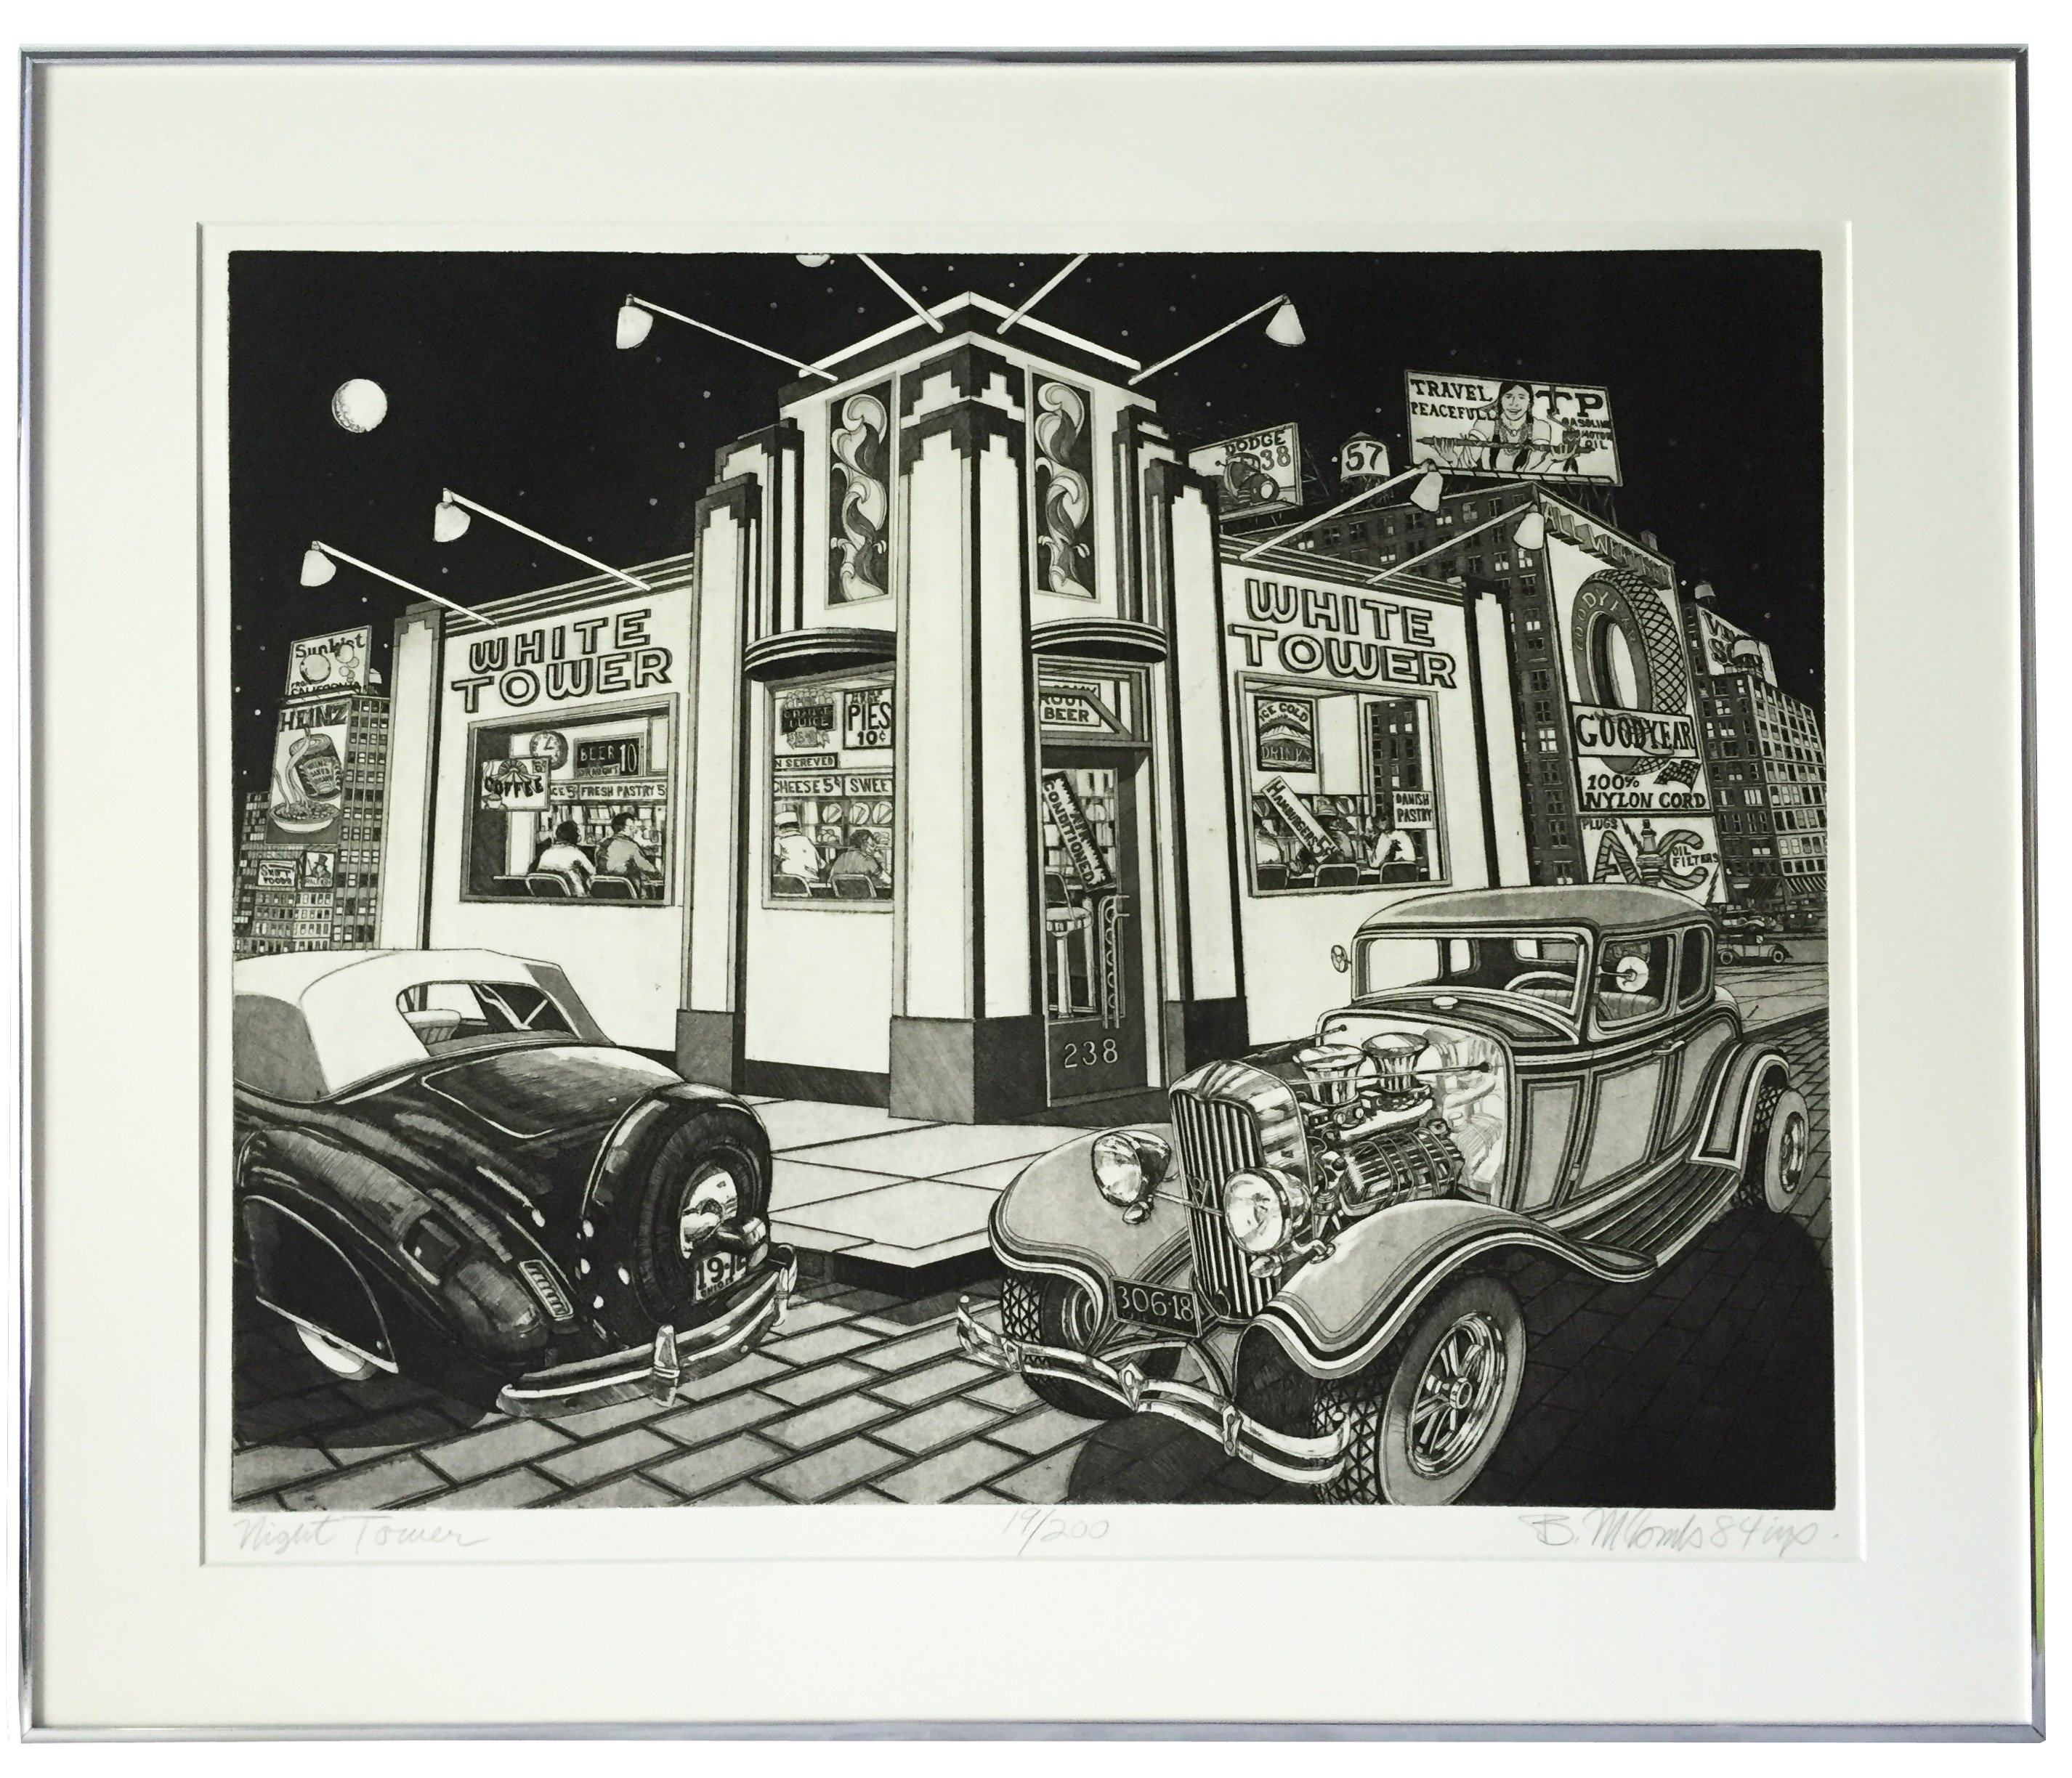 Vintage 1950s Diner Etching By Bruce Mccombs Chairish